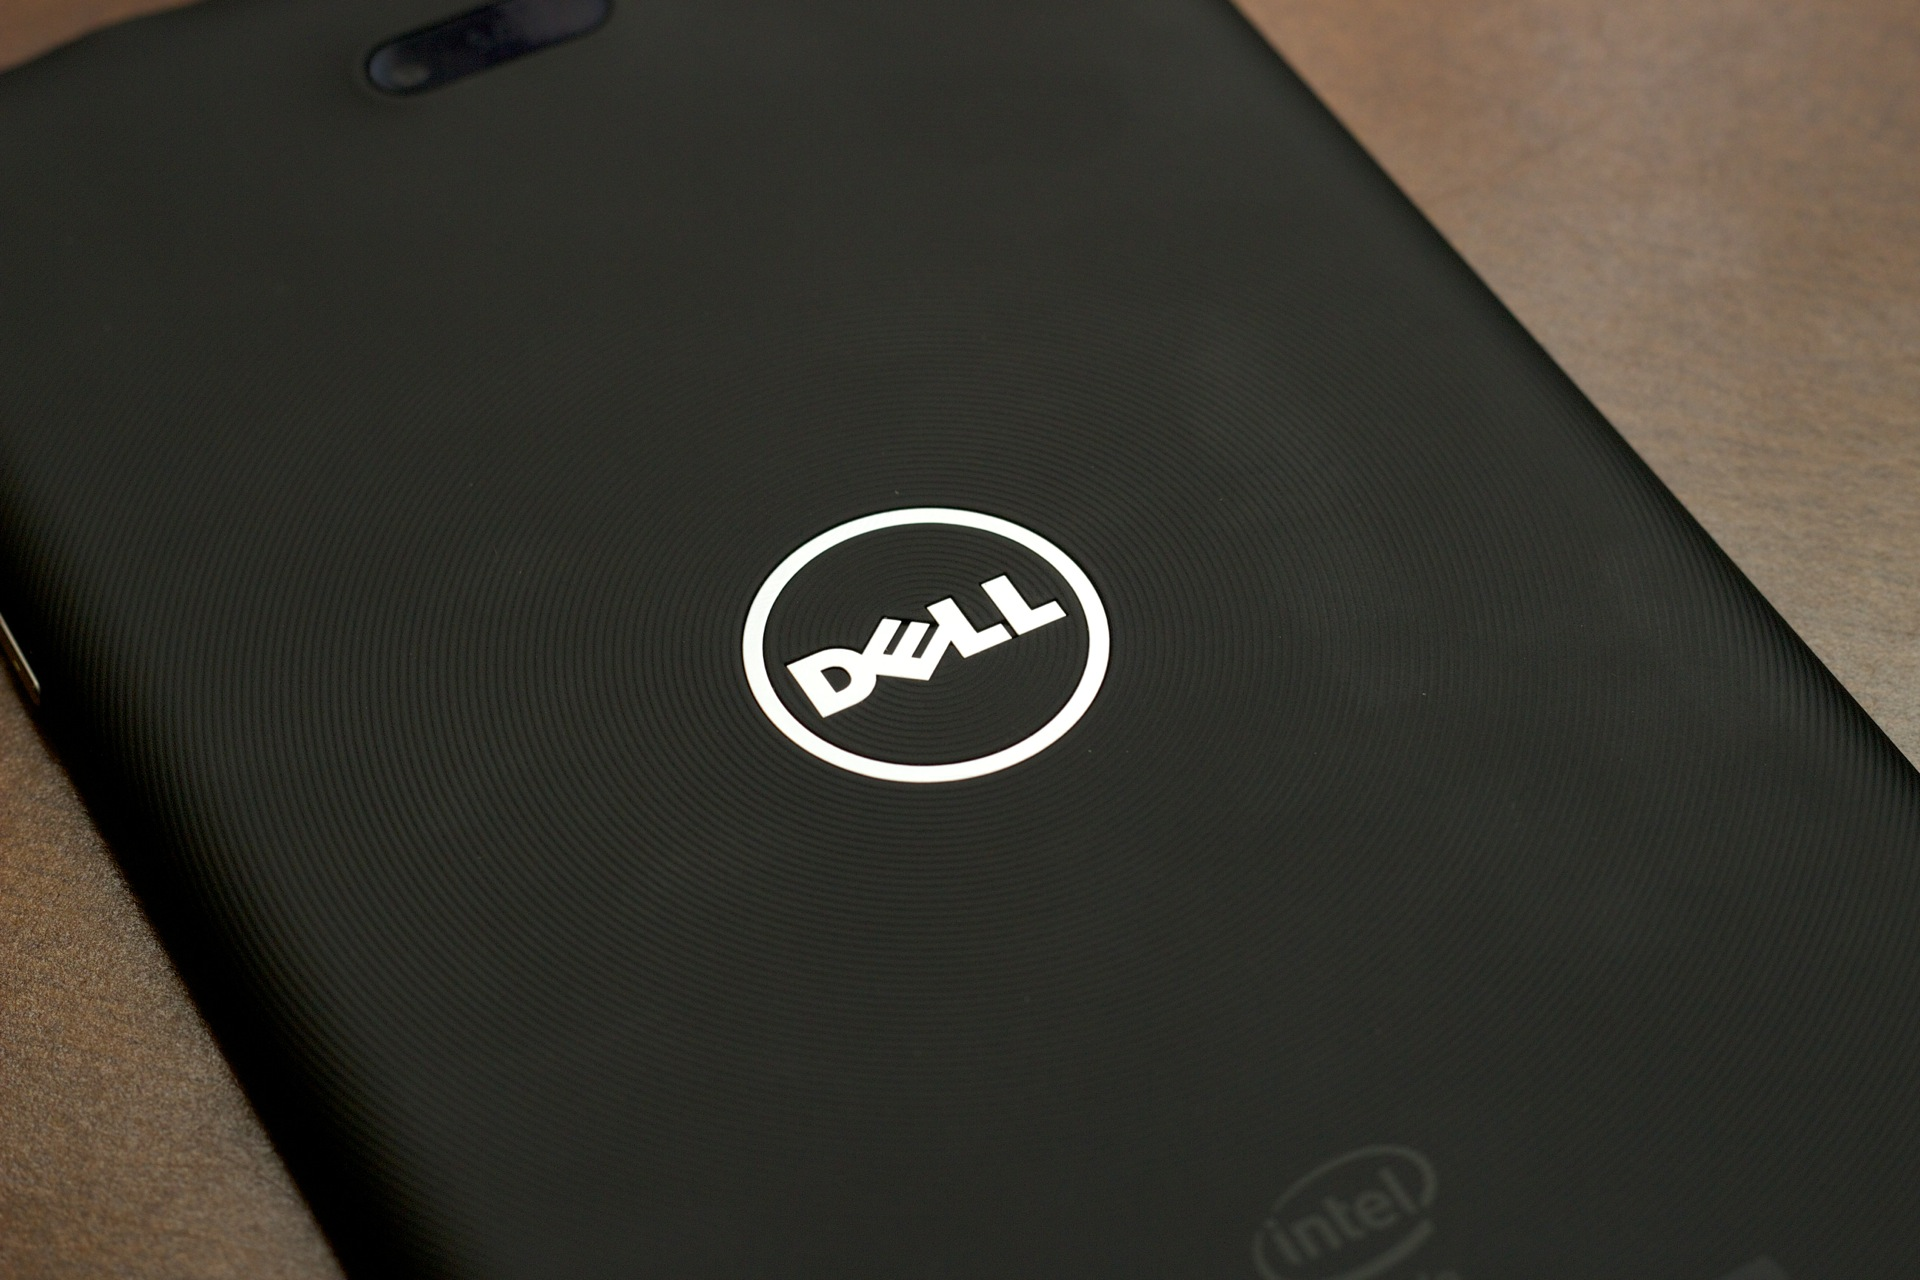 The Dell logo on the back of the Venue 8 Pro.